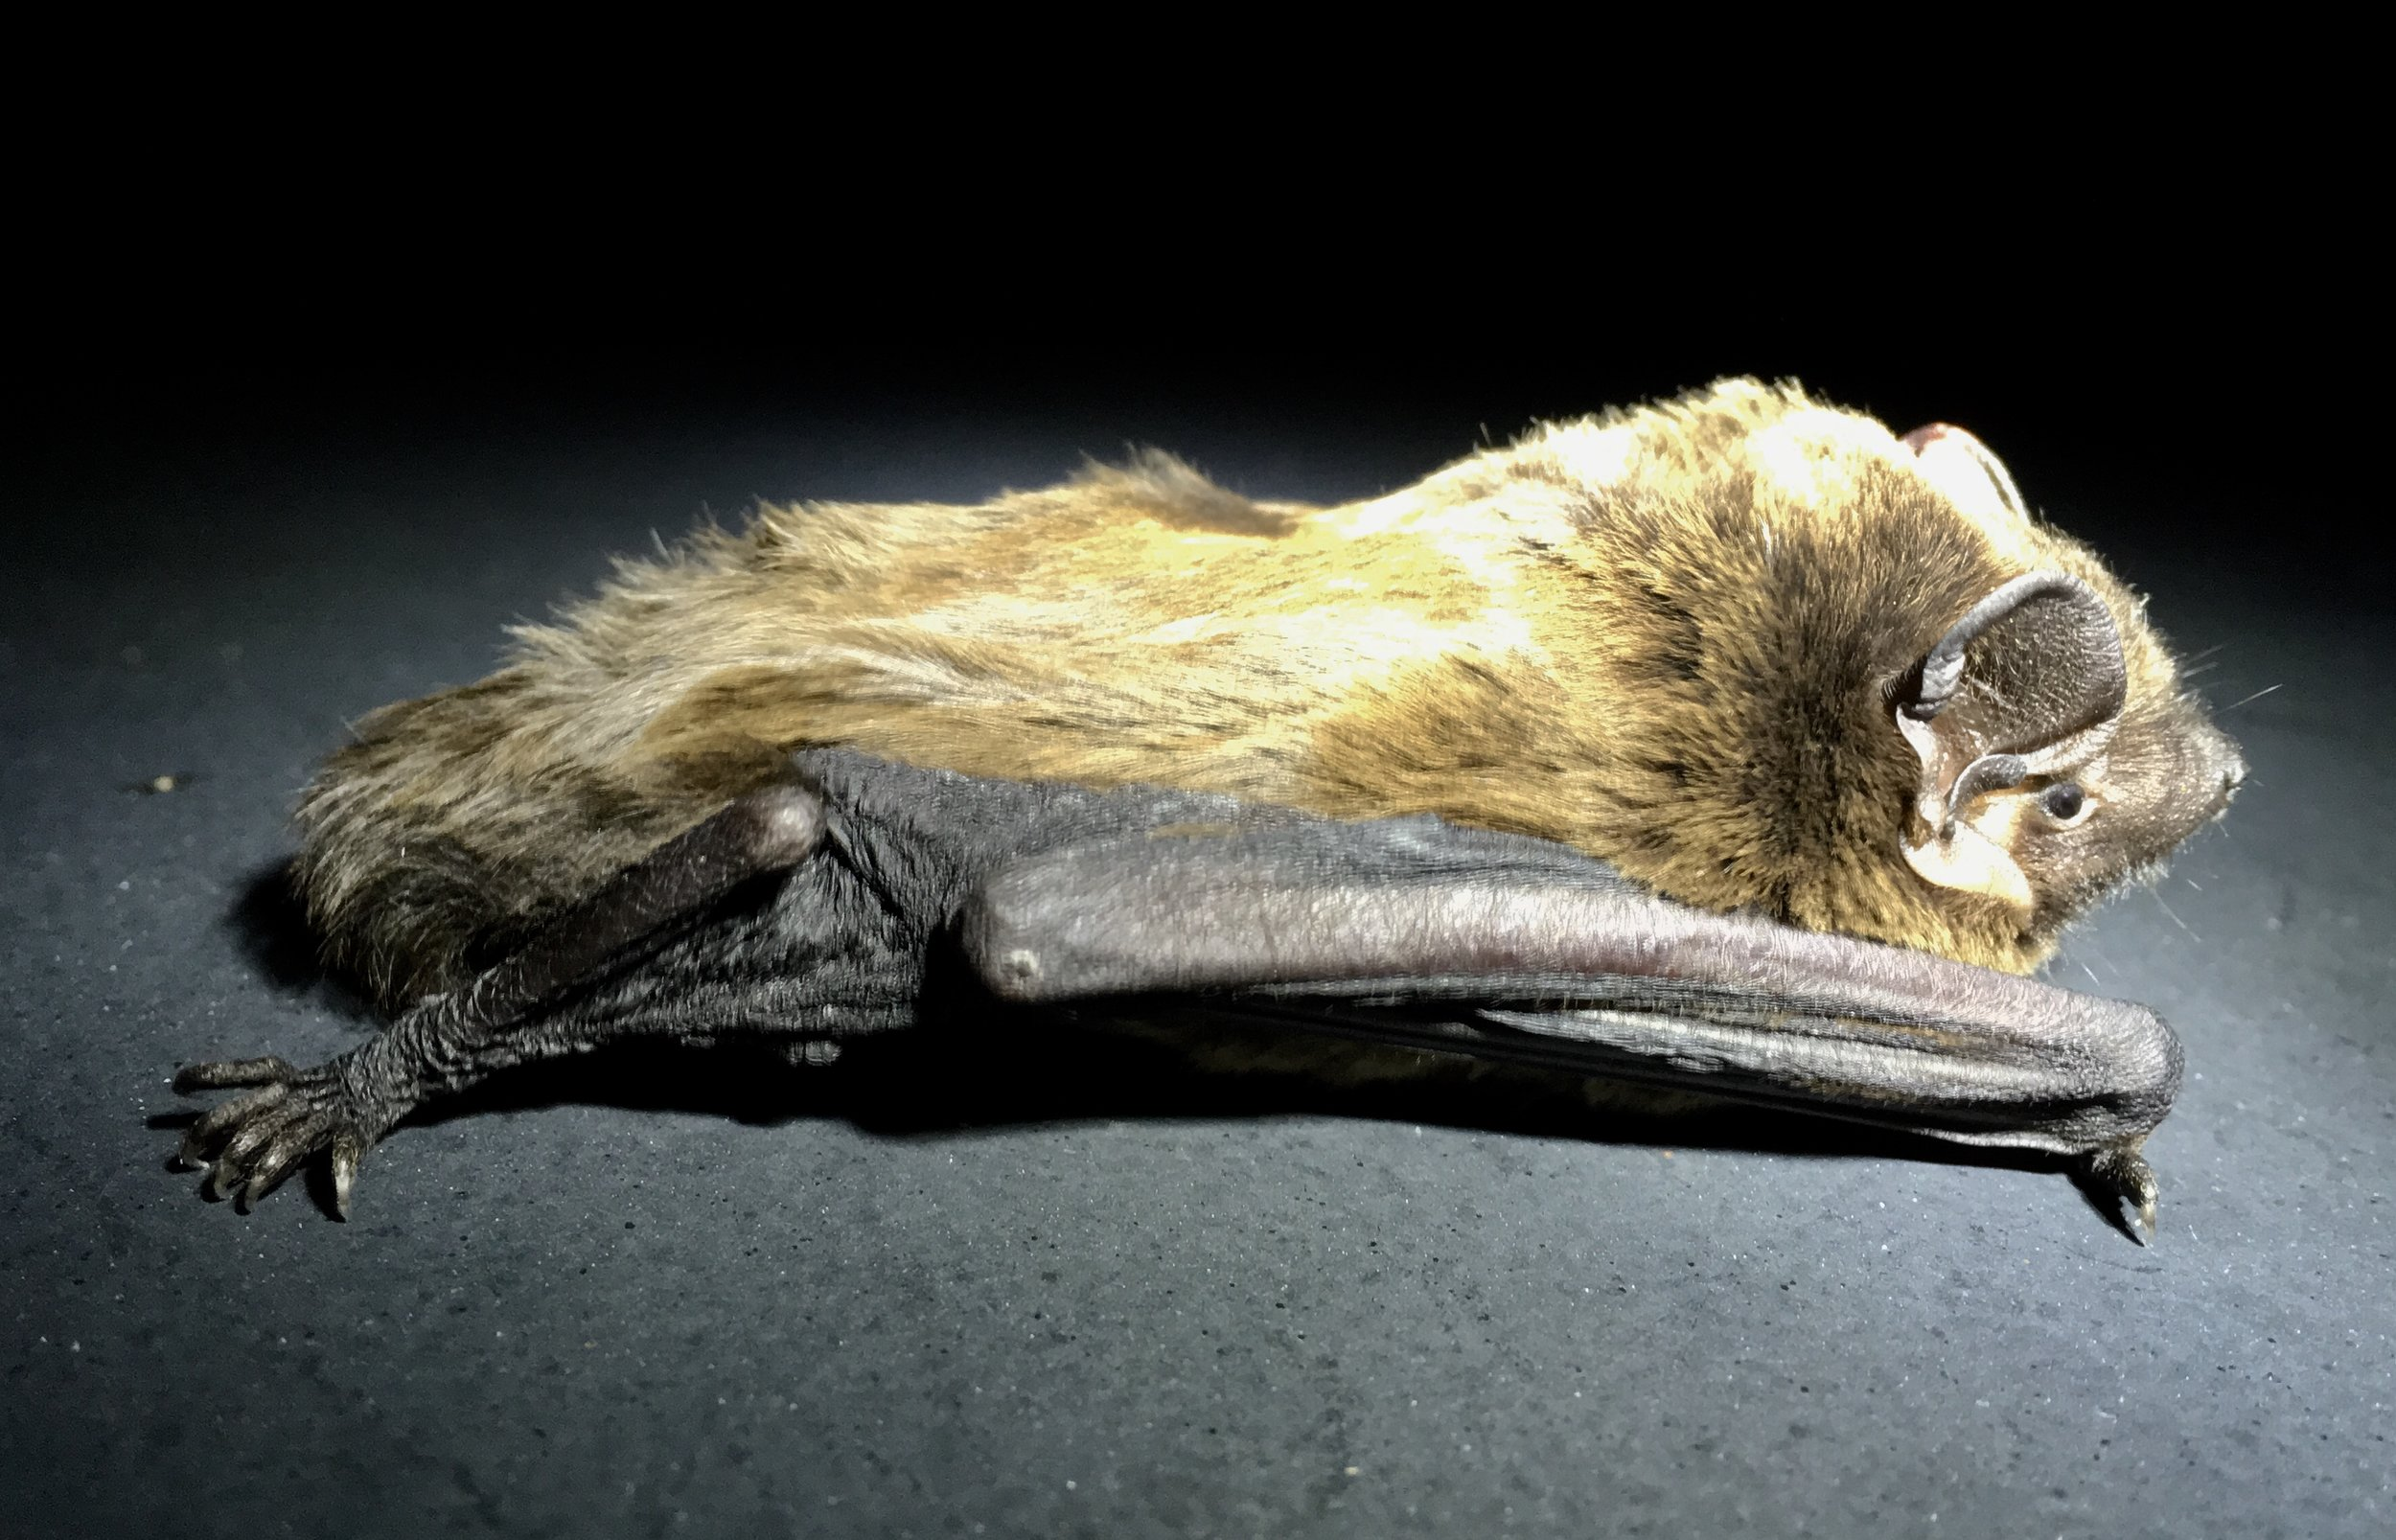 A Leisler's bat  Nyctalus leisleri  caught temporarily on an advanced licence bat survey (photo by Matt Cook)